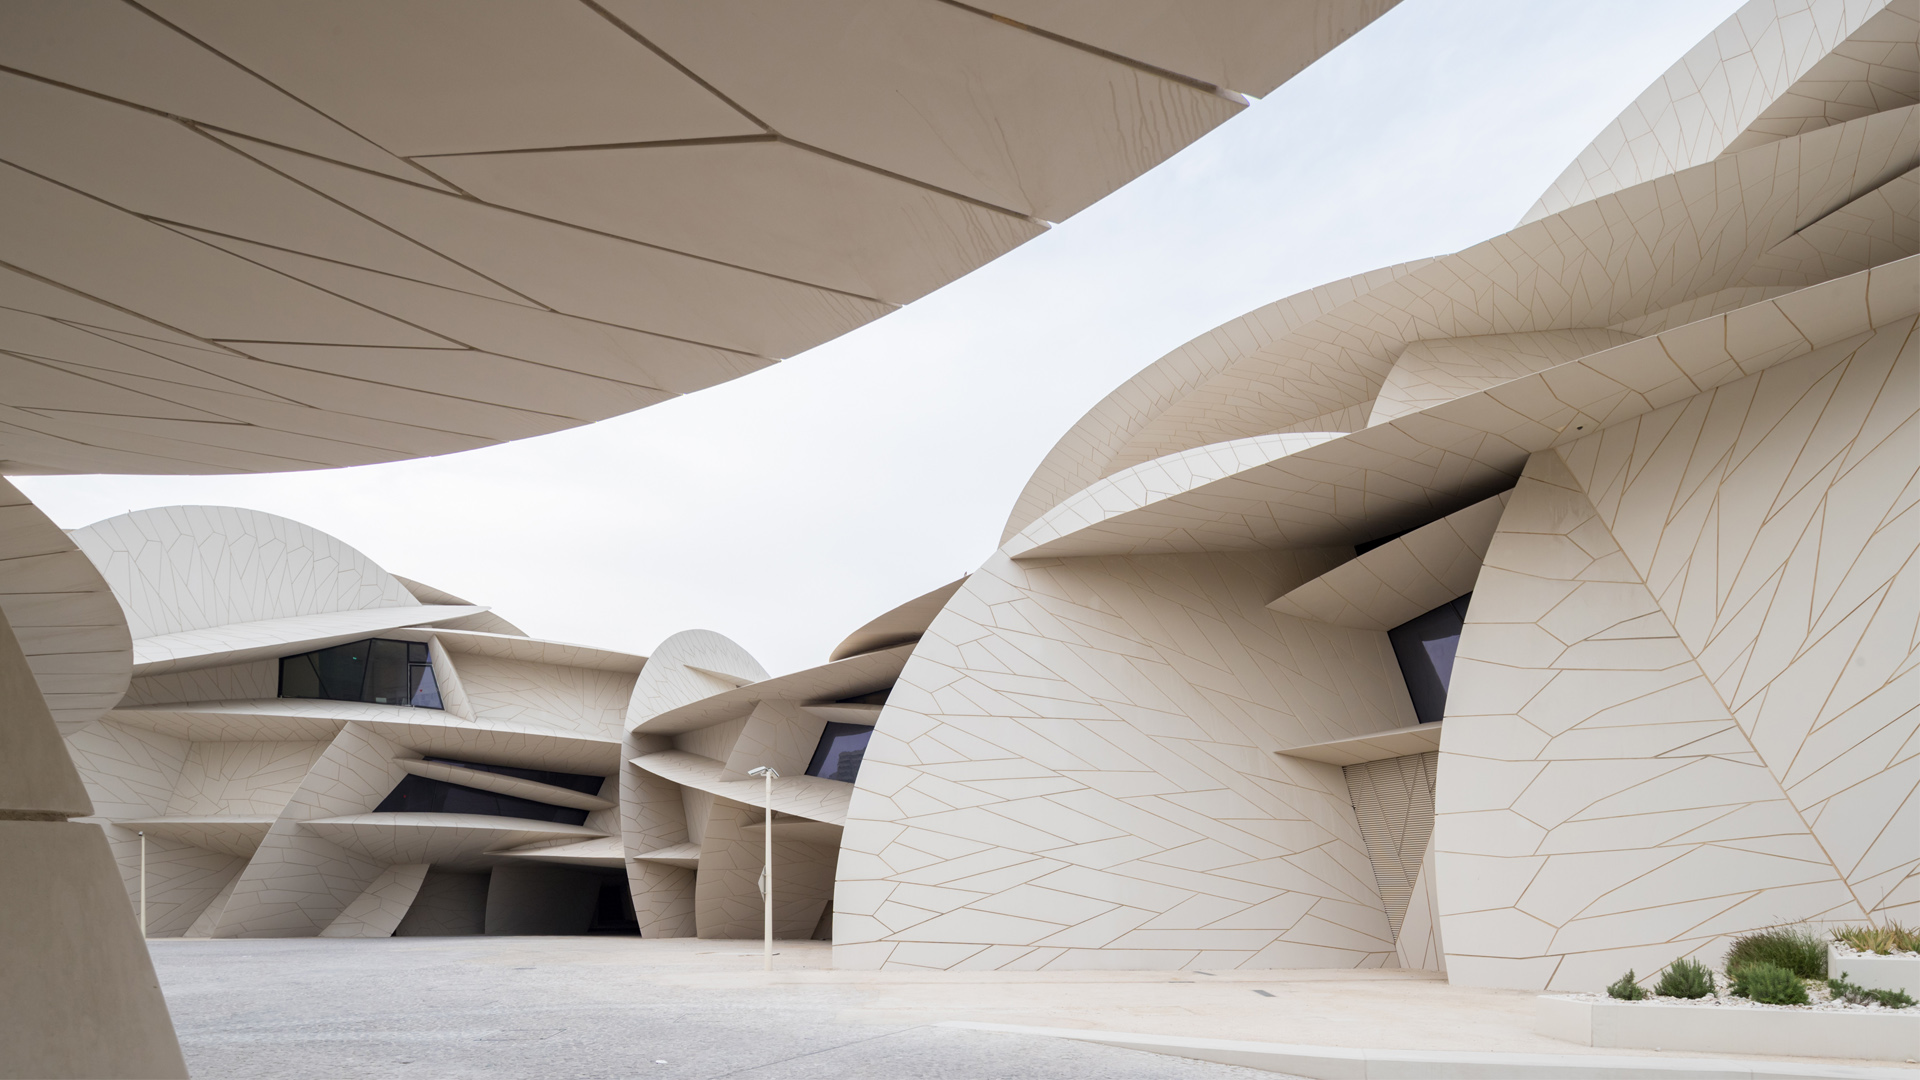 A cultural context for the National Museum of Qatar by Jean Nouvel